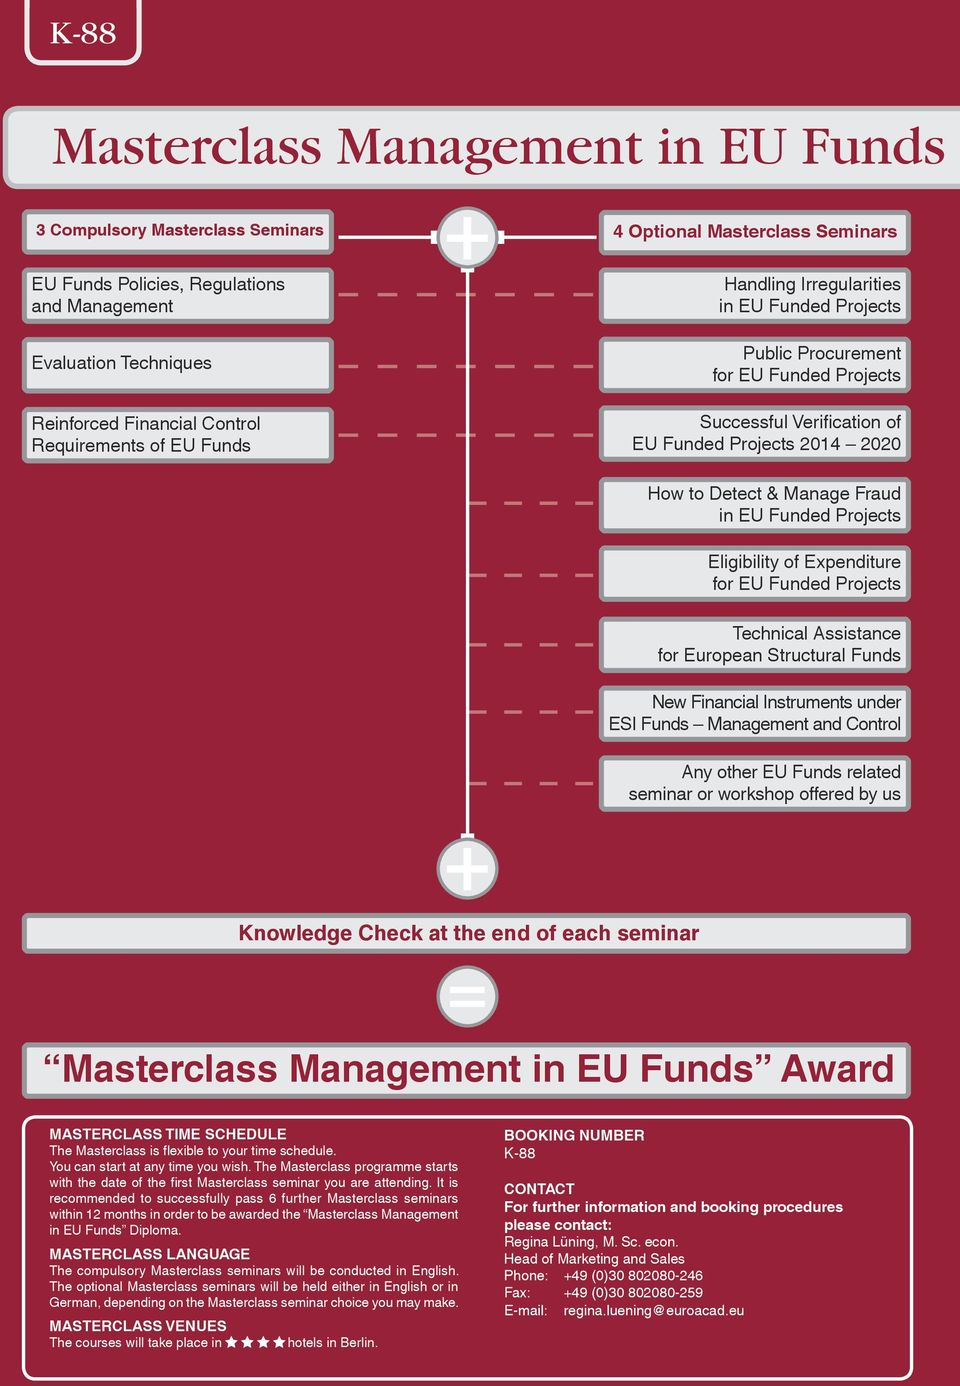 of EU Funded Projects 2014 2020 How to Detect & Manage Fraud in EU Funded Projects Eligibility of Expenditure for EU Funded Projects Technical Assistance for European Structural Funds New Financial